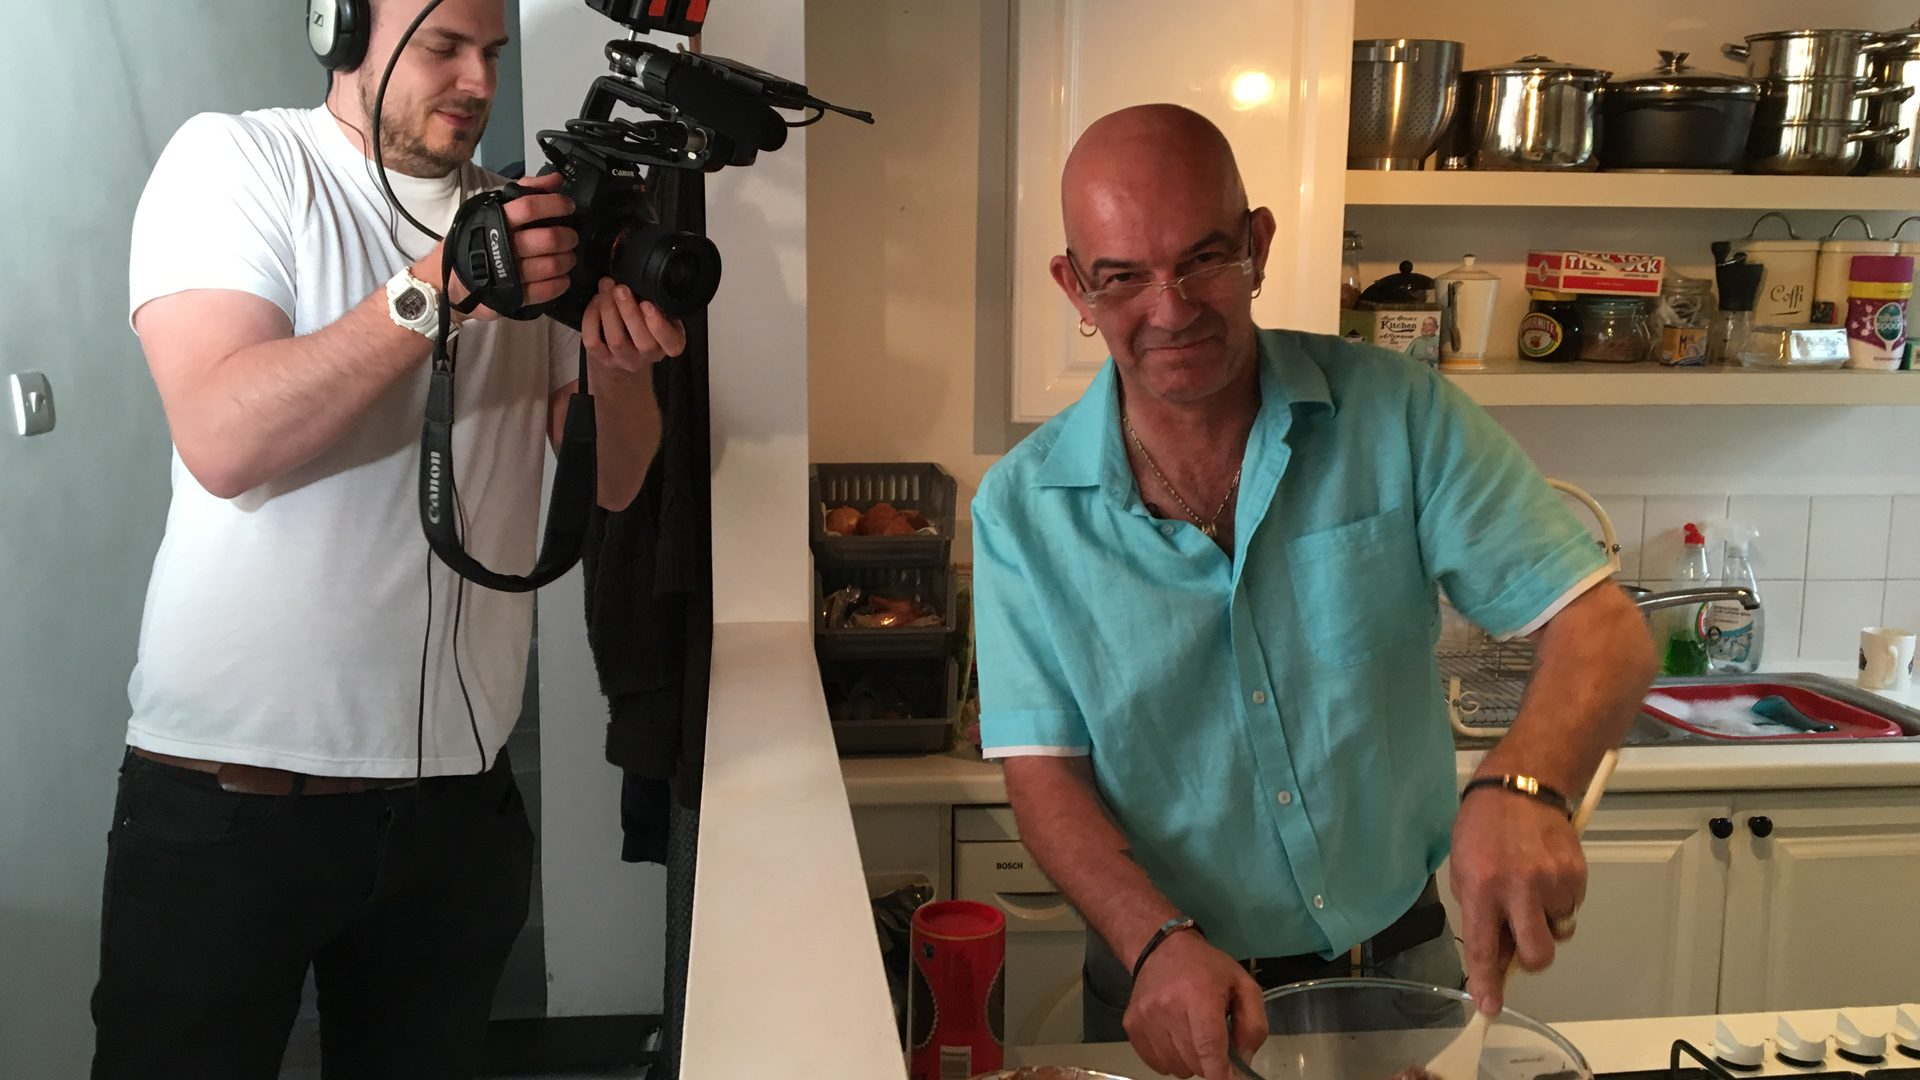 Man making cakes in kitchen whilst being filmed